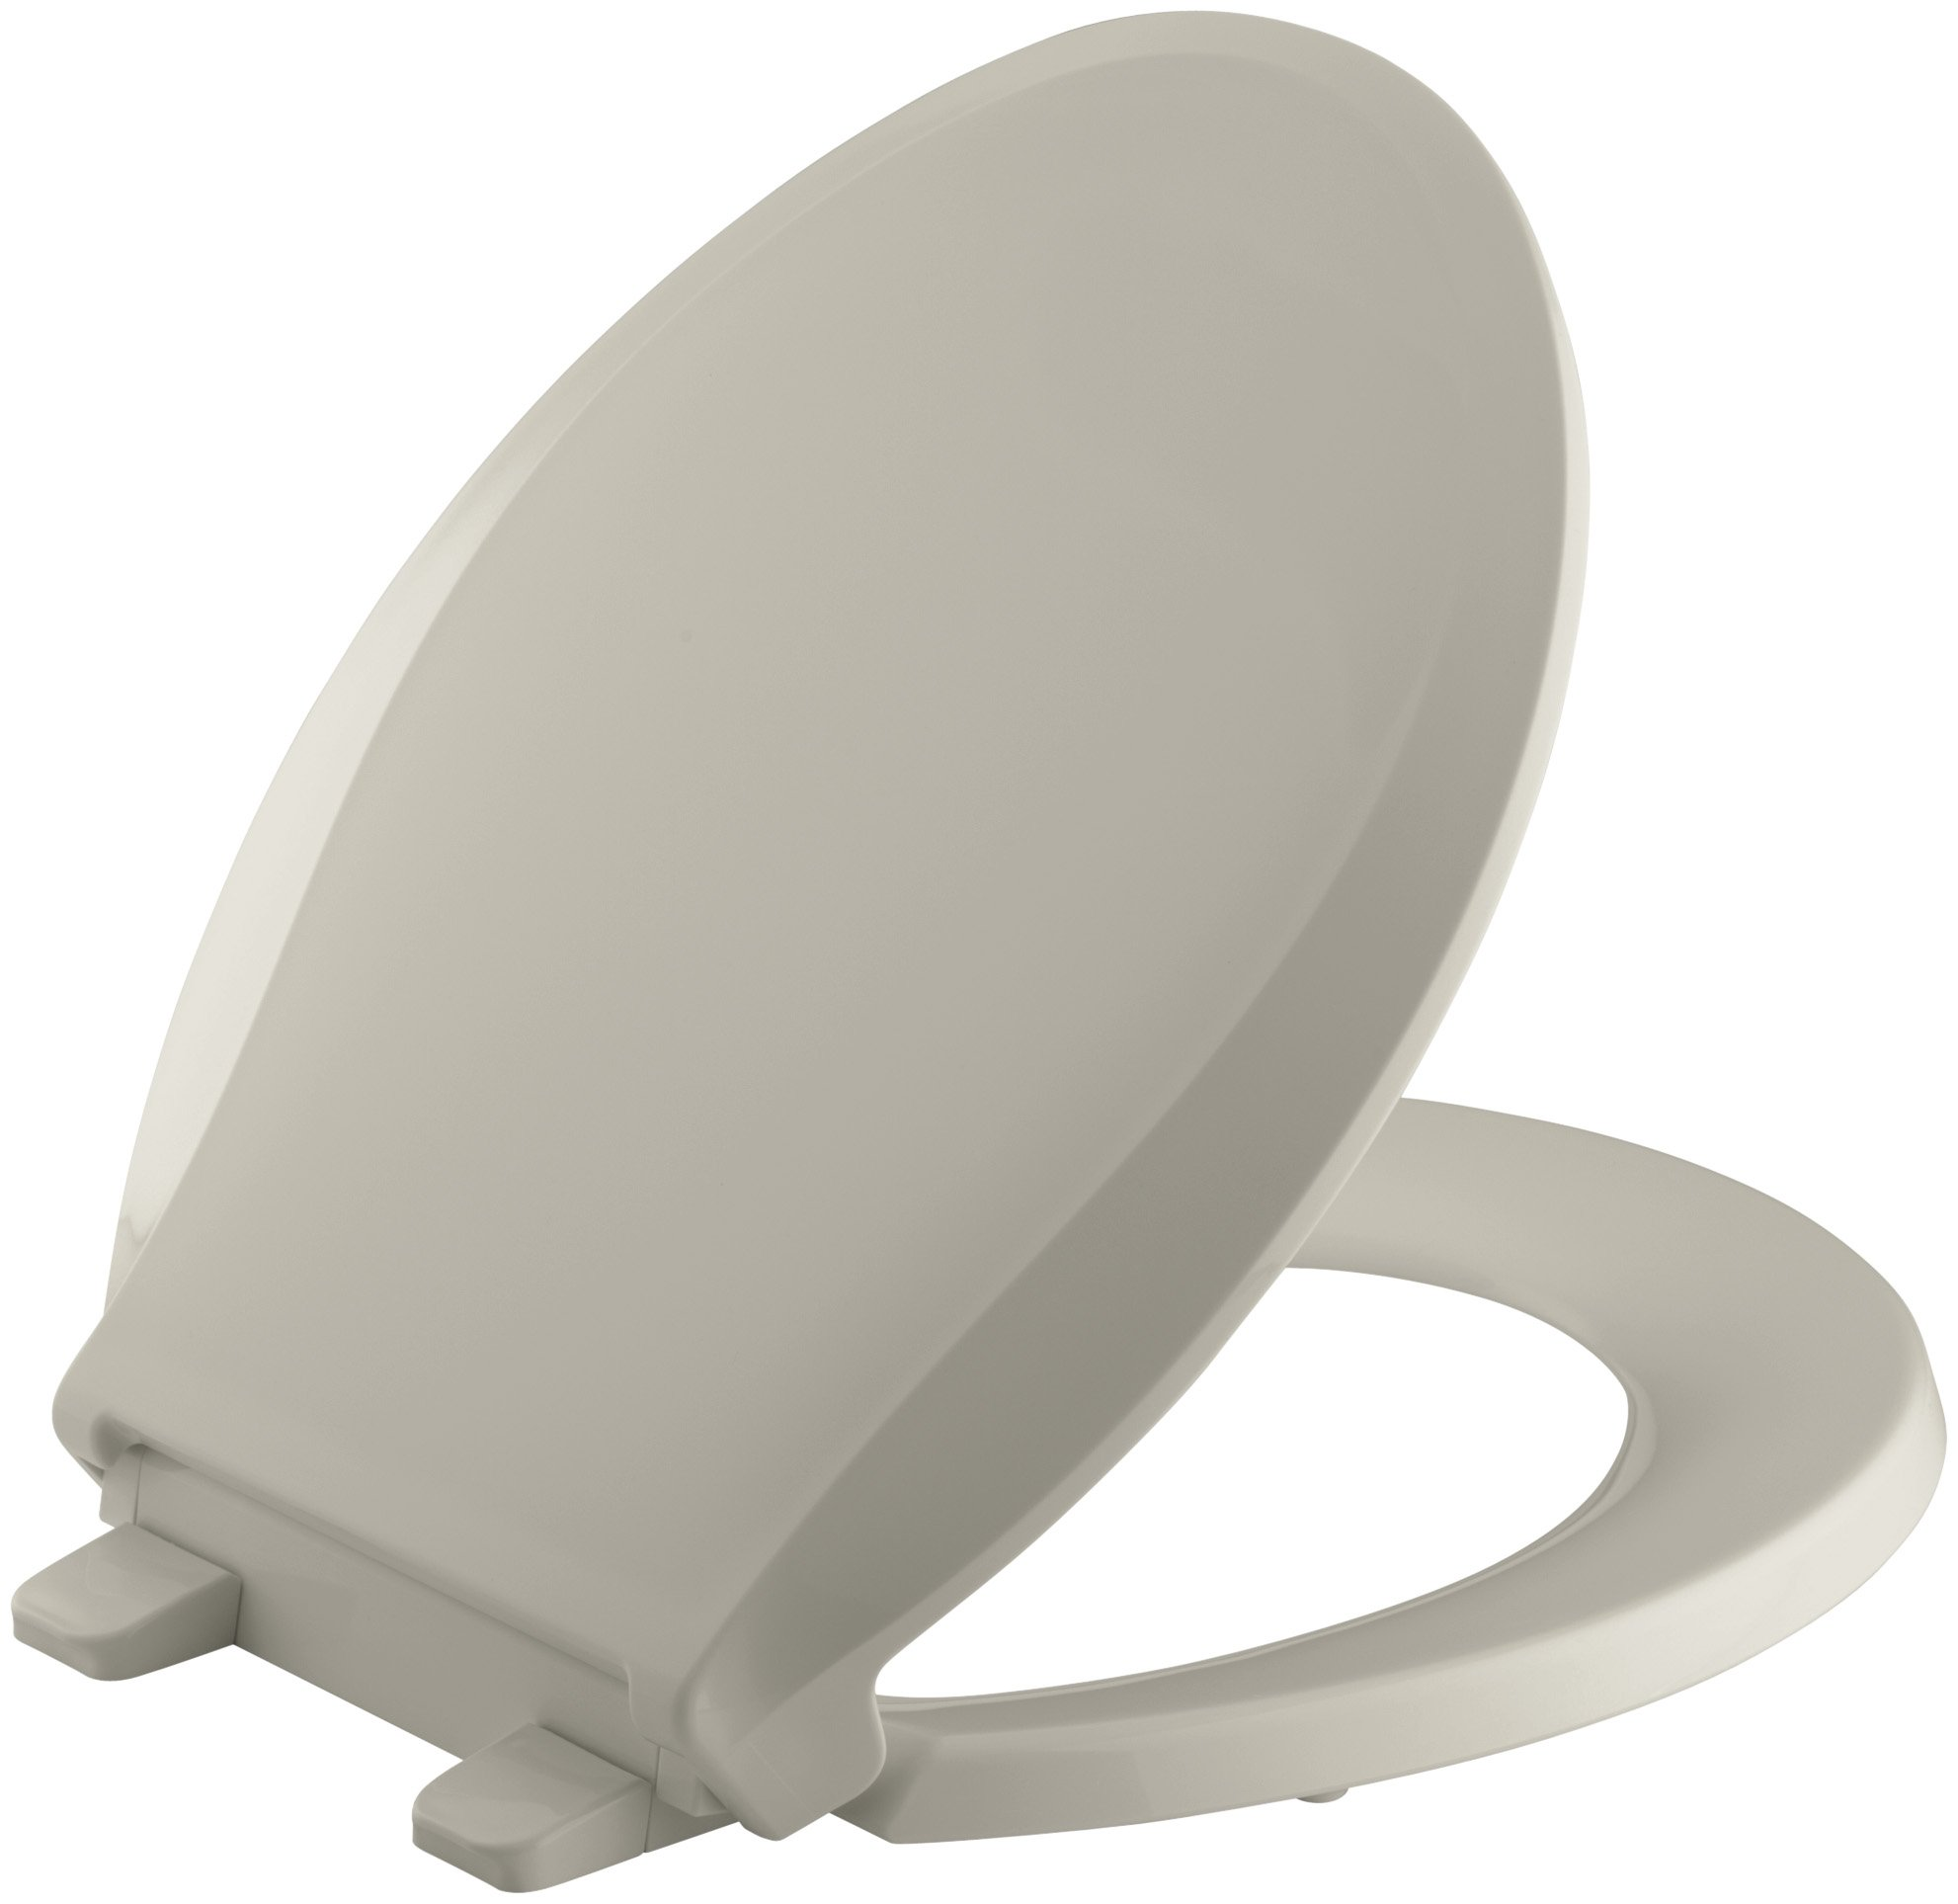 KOHLER K-4639-G9 Cachet Quiet-Close with Grip-Tight Bumpers Round-front Toilet Seat, Sandbar